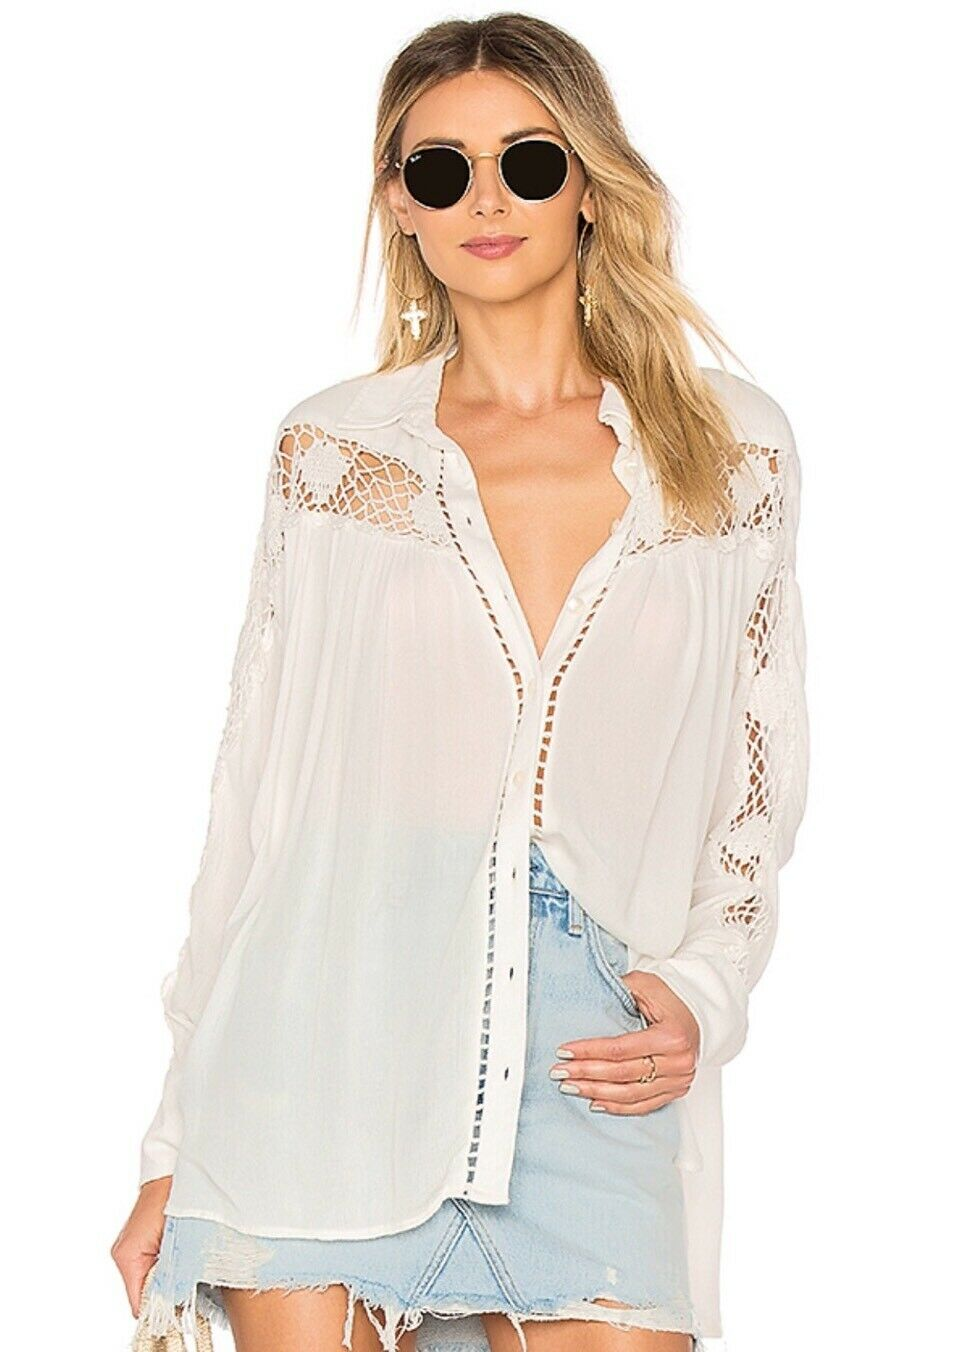 NWT Free People Katie Bird Crochet Inset Shirt Top Blouse Ivory XS S